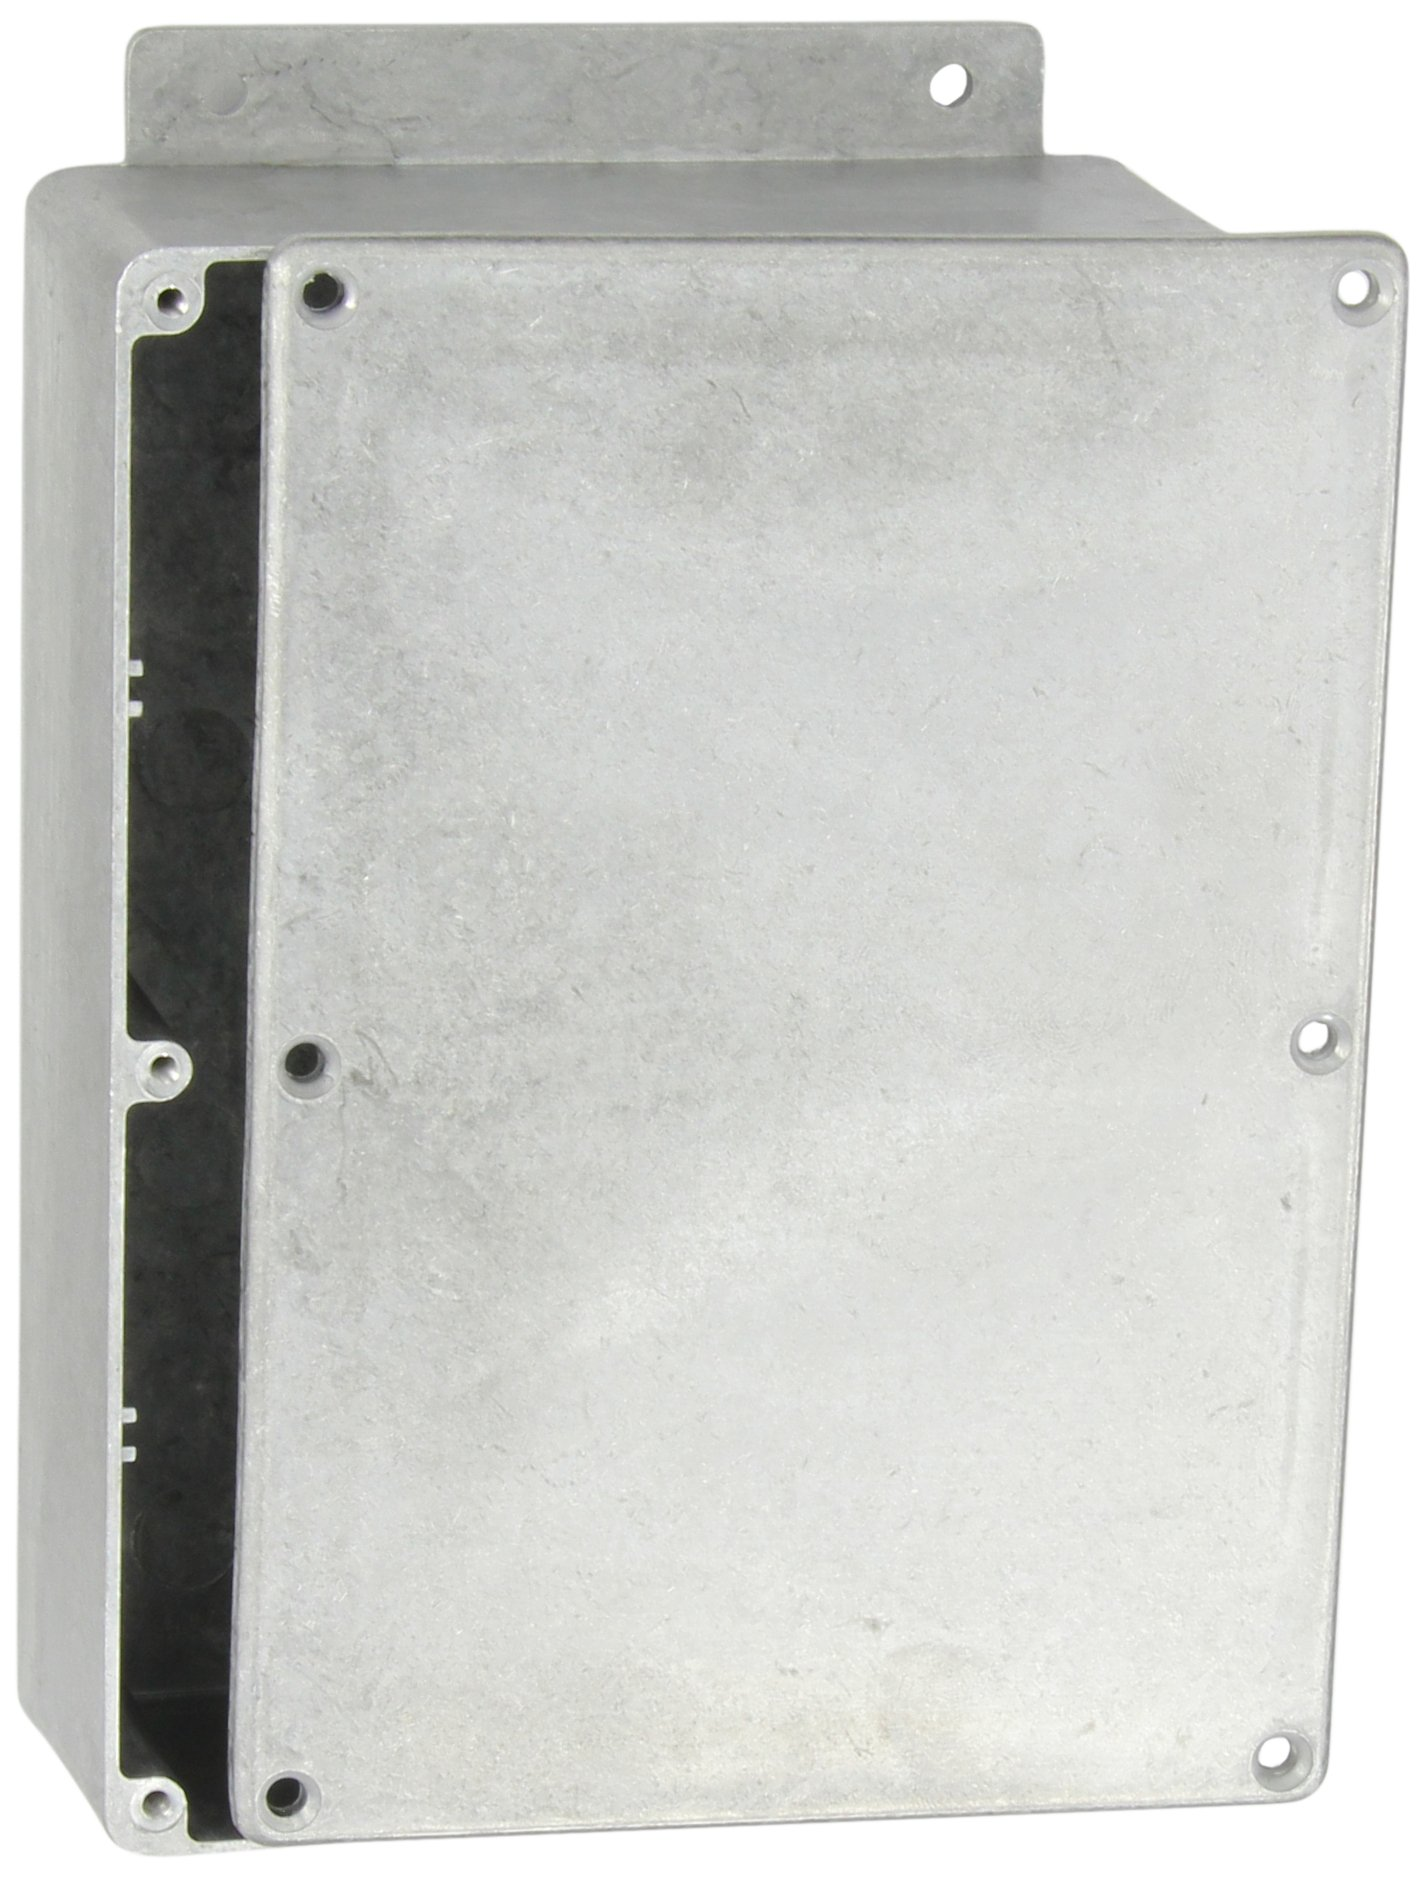 """BUD Industries CN-6709 Die Cast Aluminum Enclosure with Mounting Bracket, 6-49/64"""" Length x 4-49/64"""" Width x 2-7/32"""" Height, Natural Finish"""